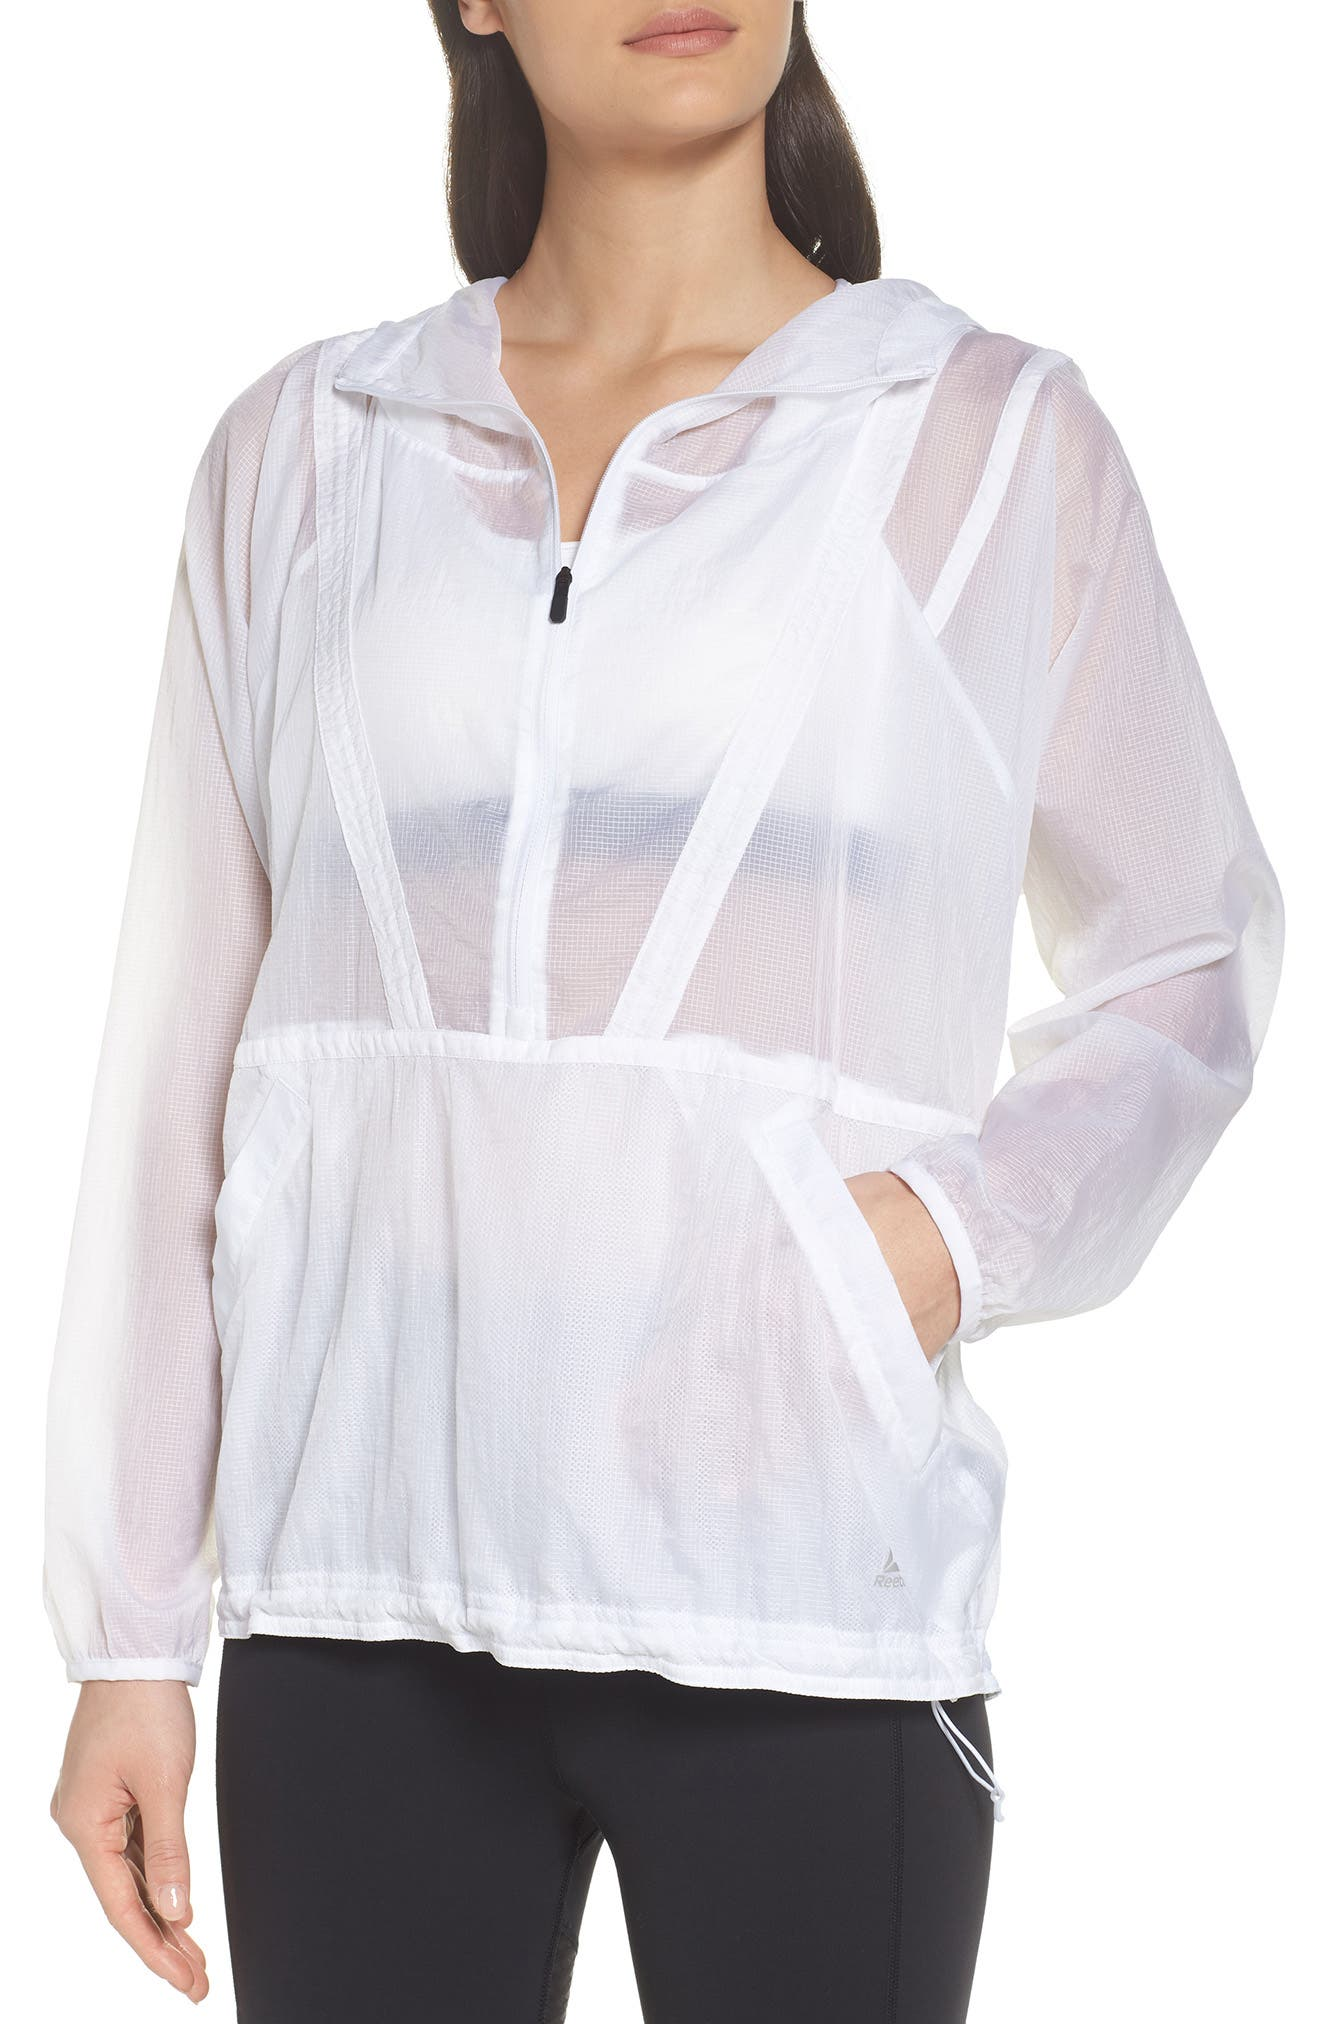 Packable Parachute Anorak,                             Main thumbnail 1, color,                             White